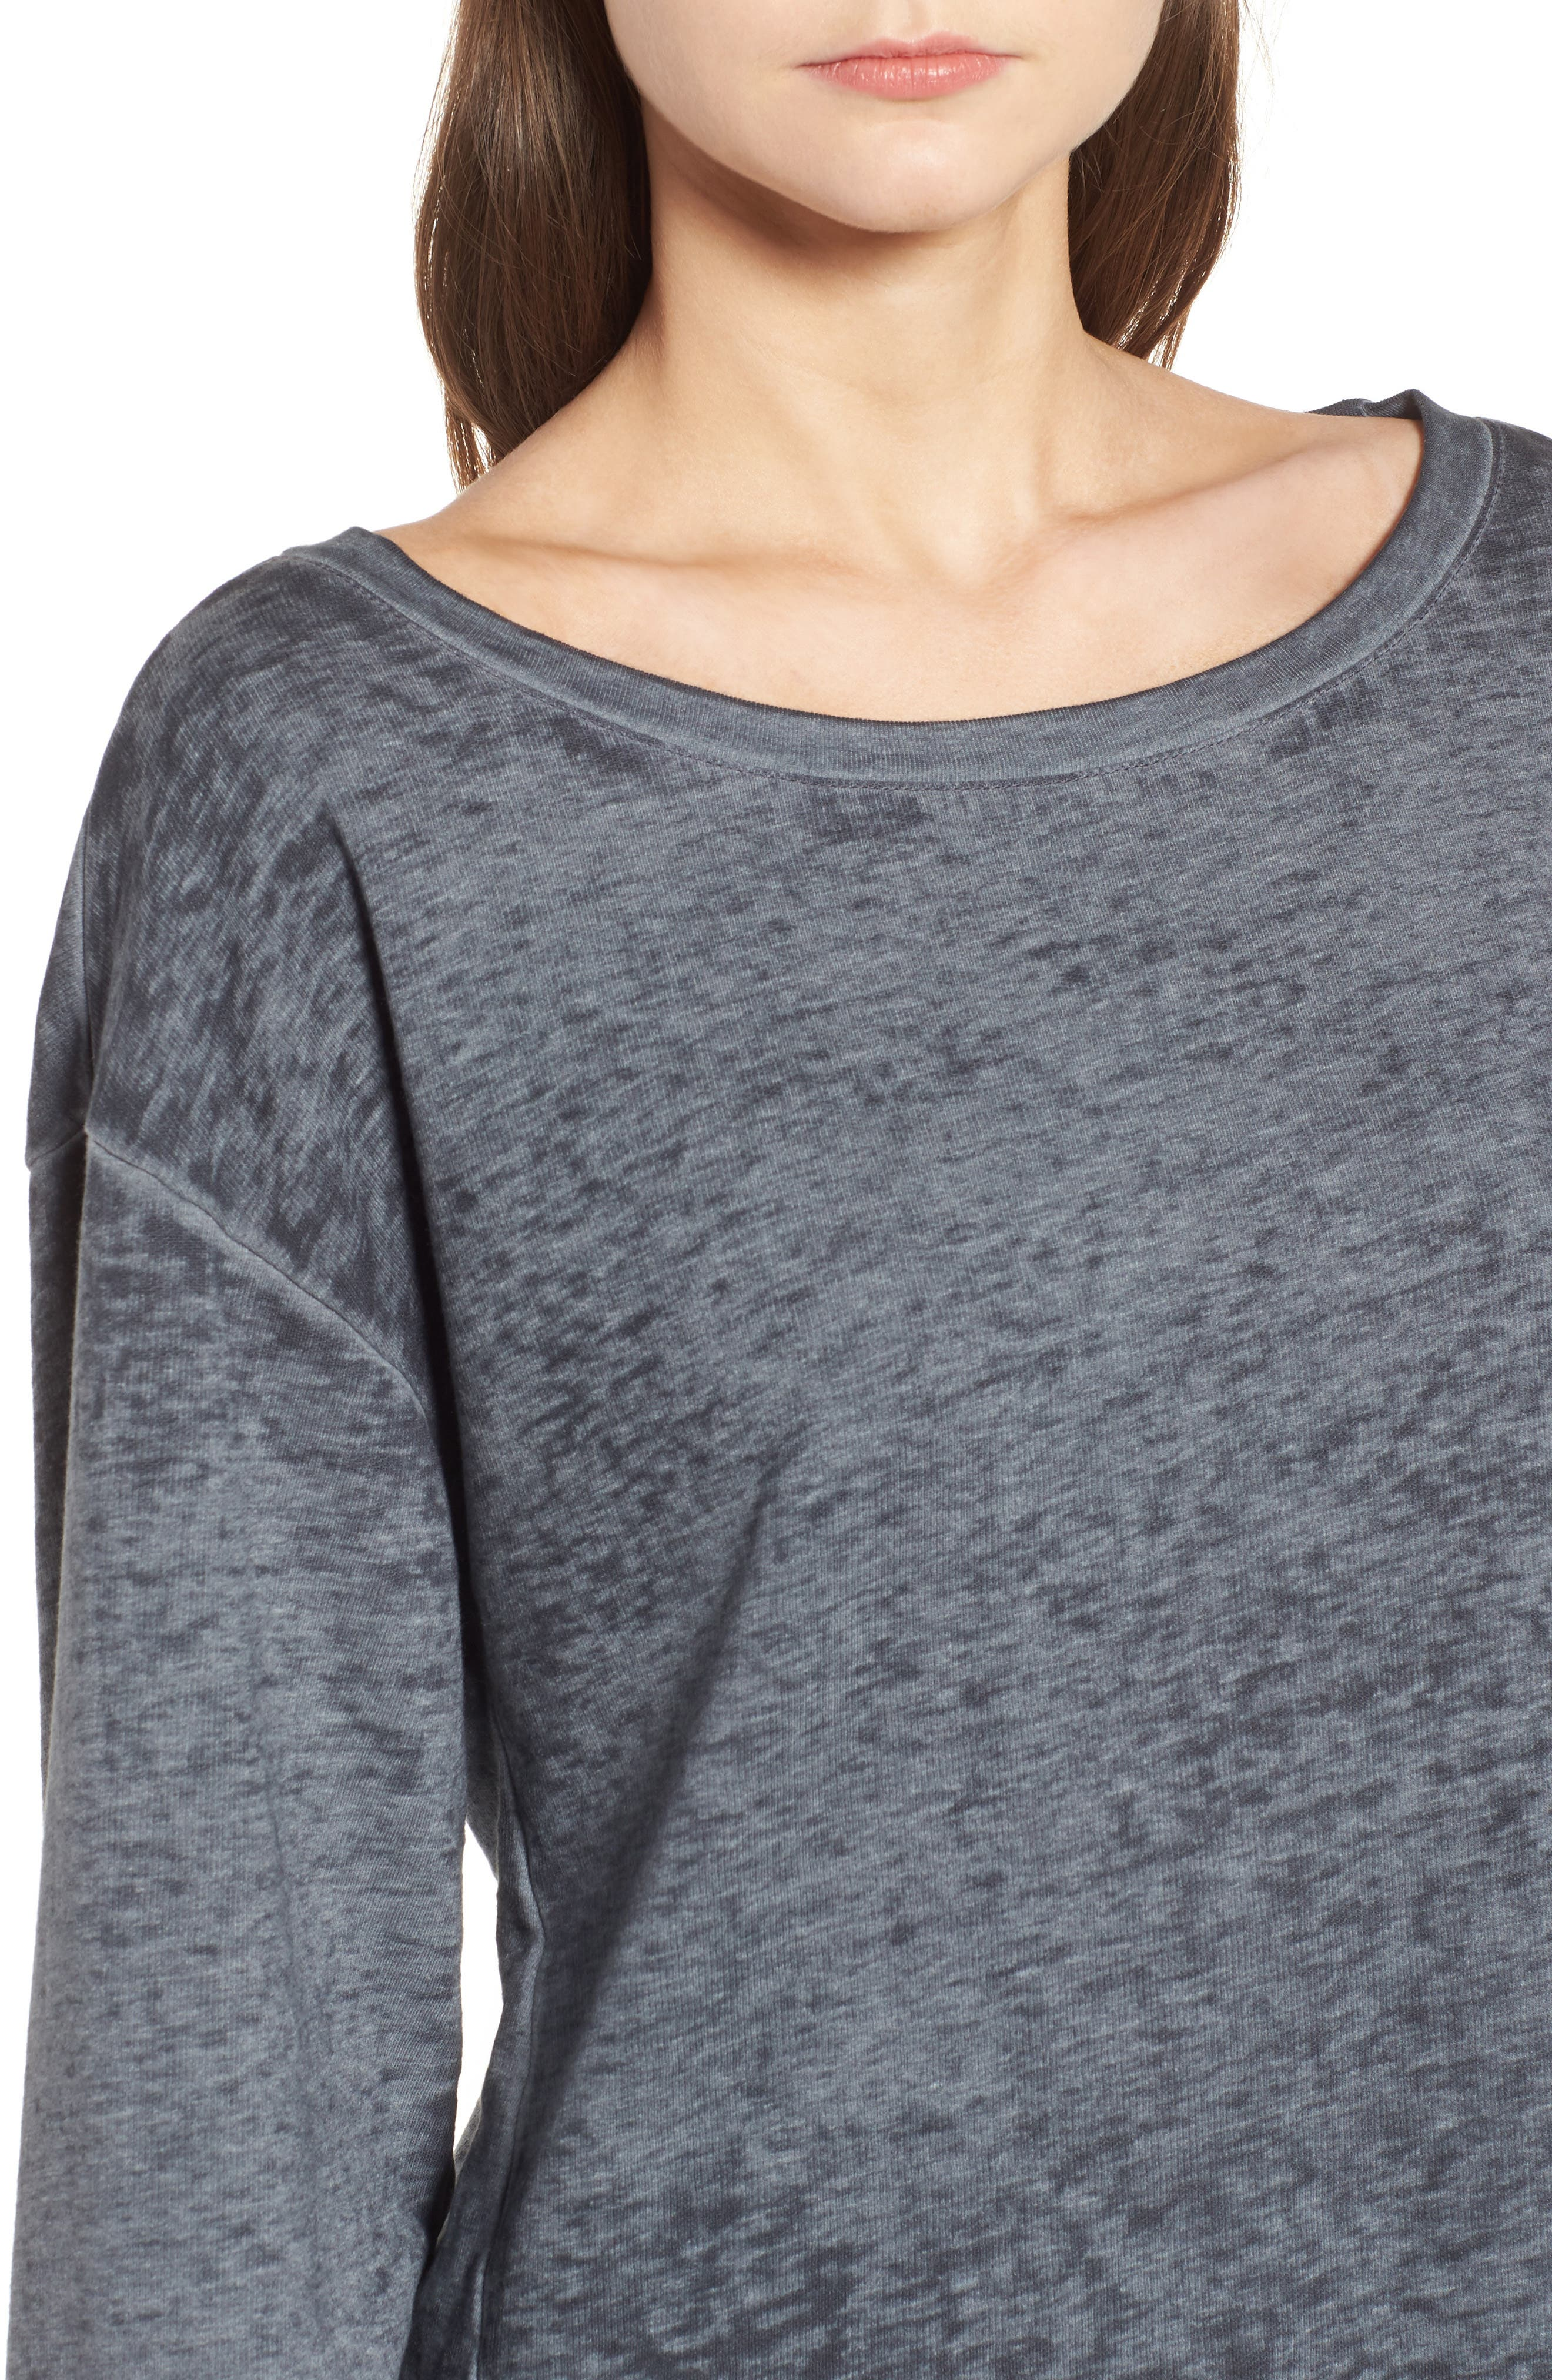 Bell Sleeve Sweatshirt,                             Alternate thumbnail 4, color,                             020